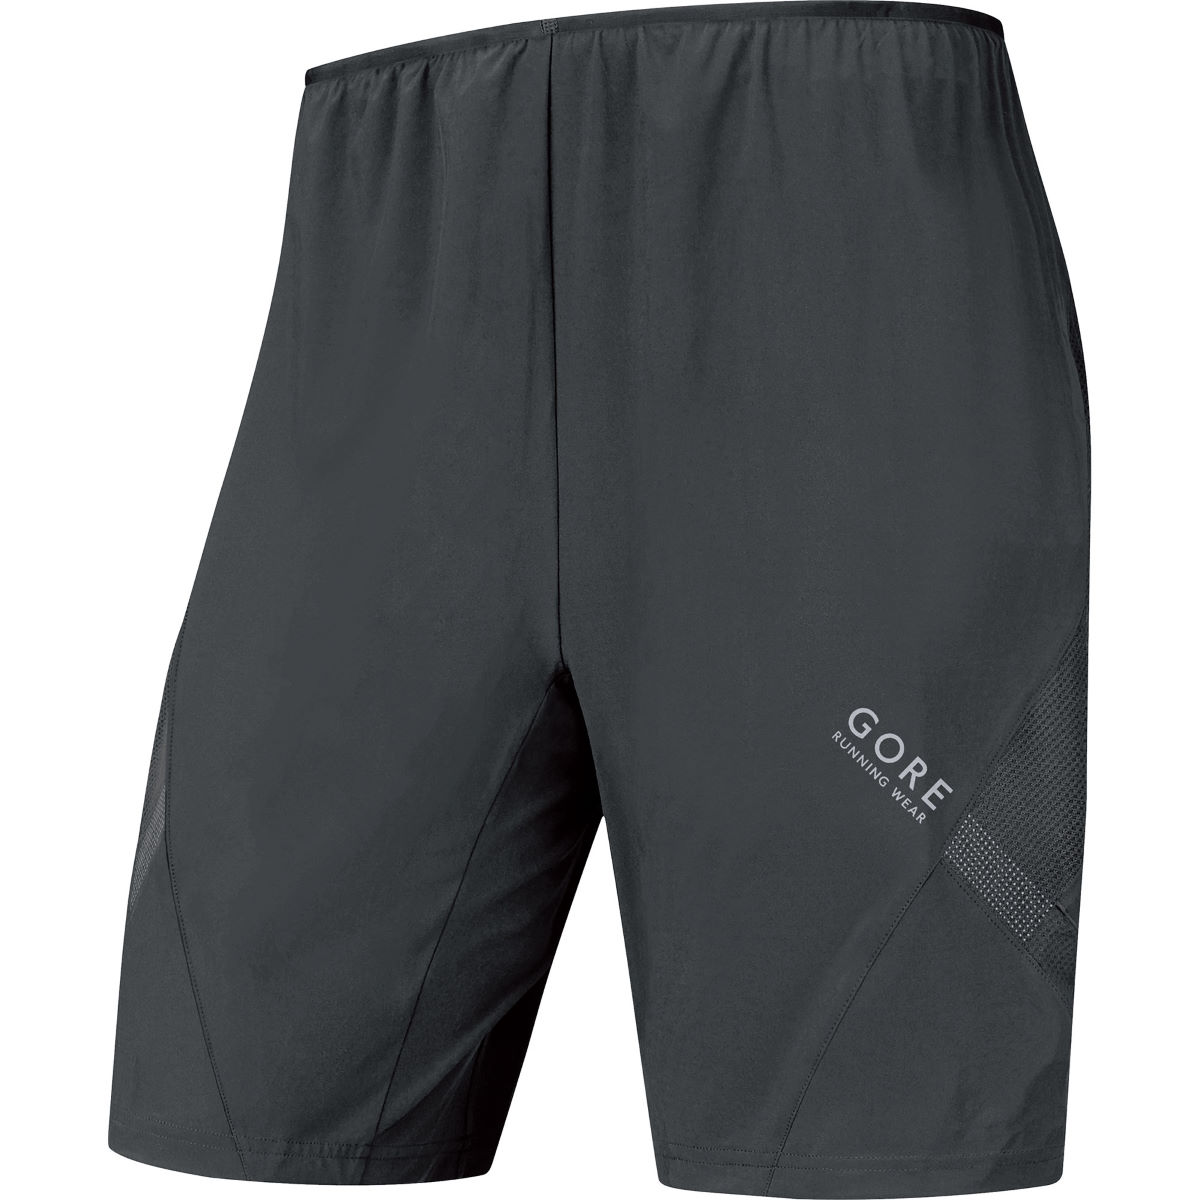 Short Gore Running Wear Air (2 en 1) - M black Shorts de running